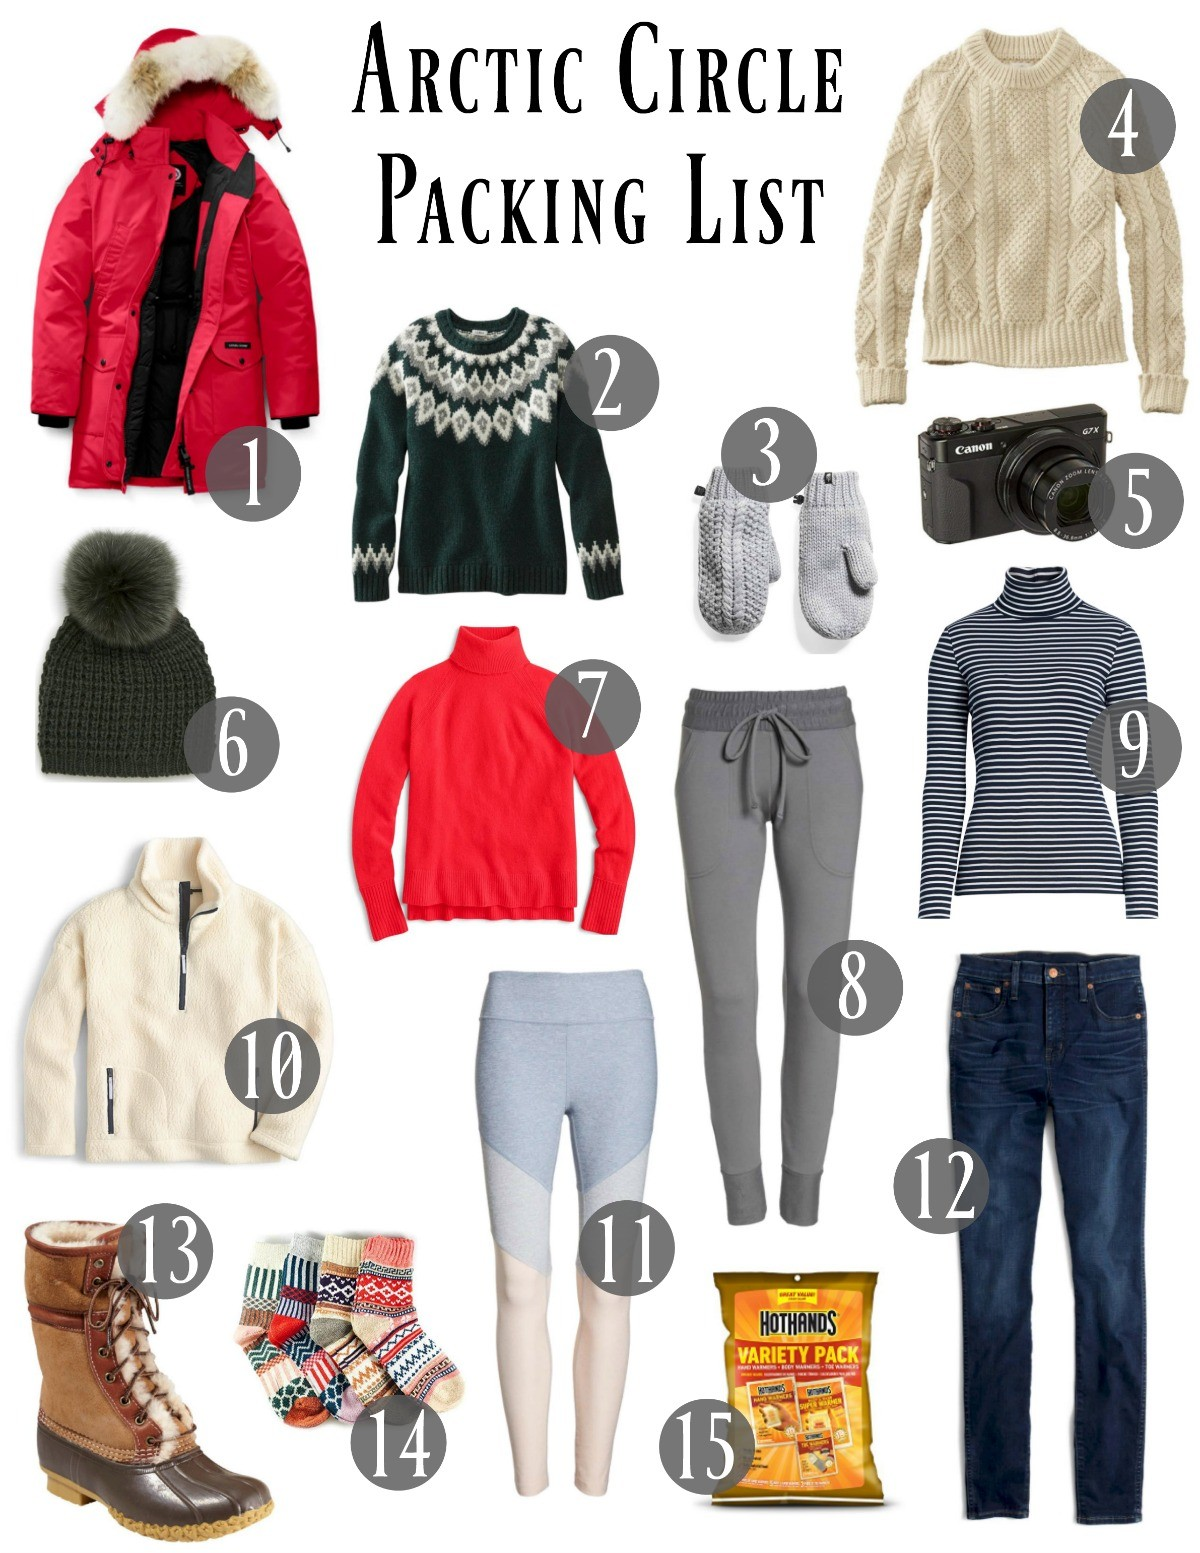 ac3b7391 Packing for the arctic circle is tricky, it is a remote area so you can't  just run to the store to buy anything you forgot. I did a bunch of research  before ...